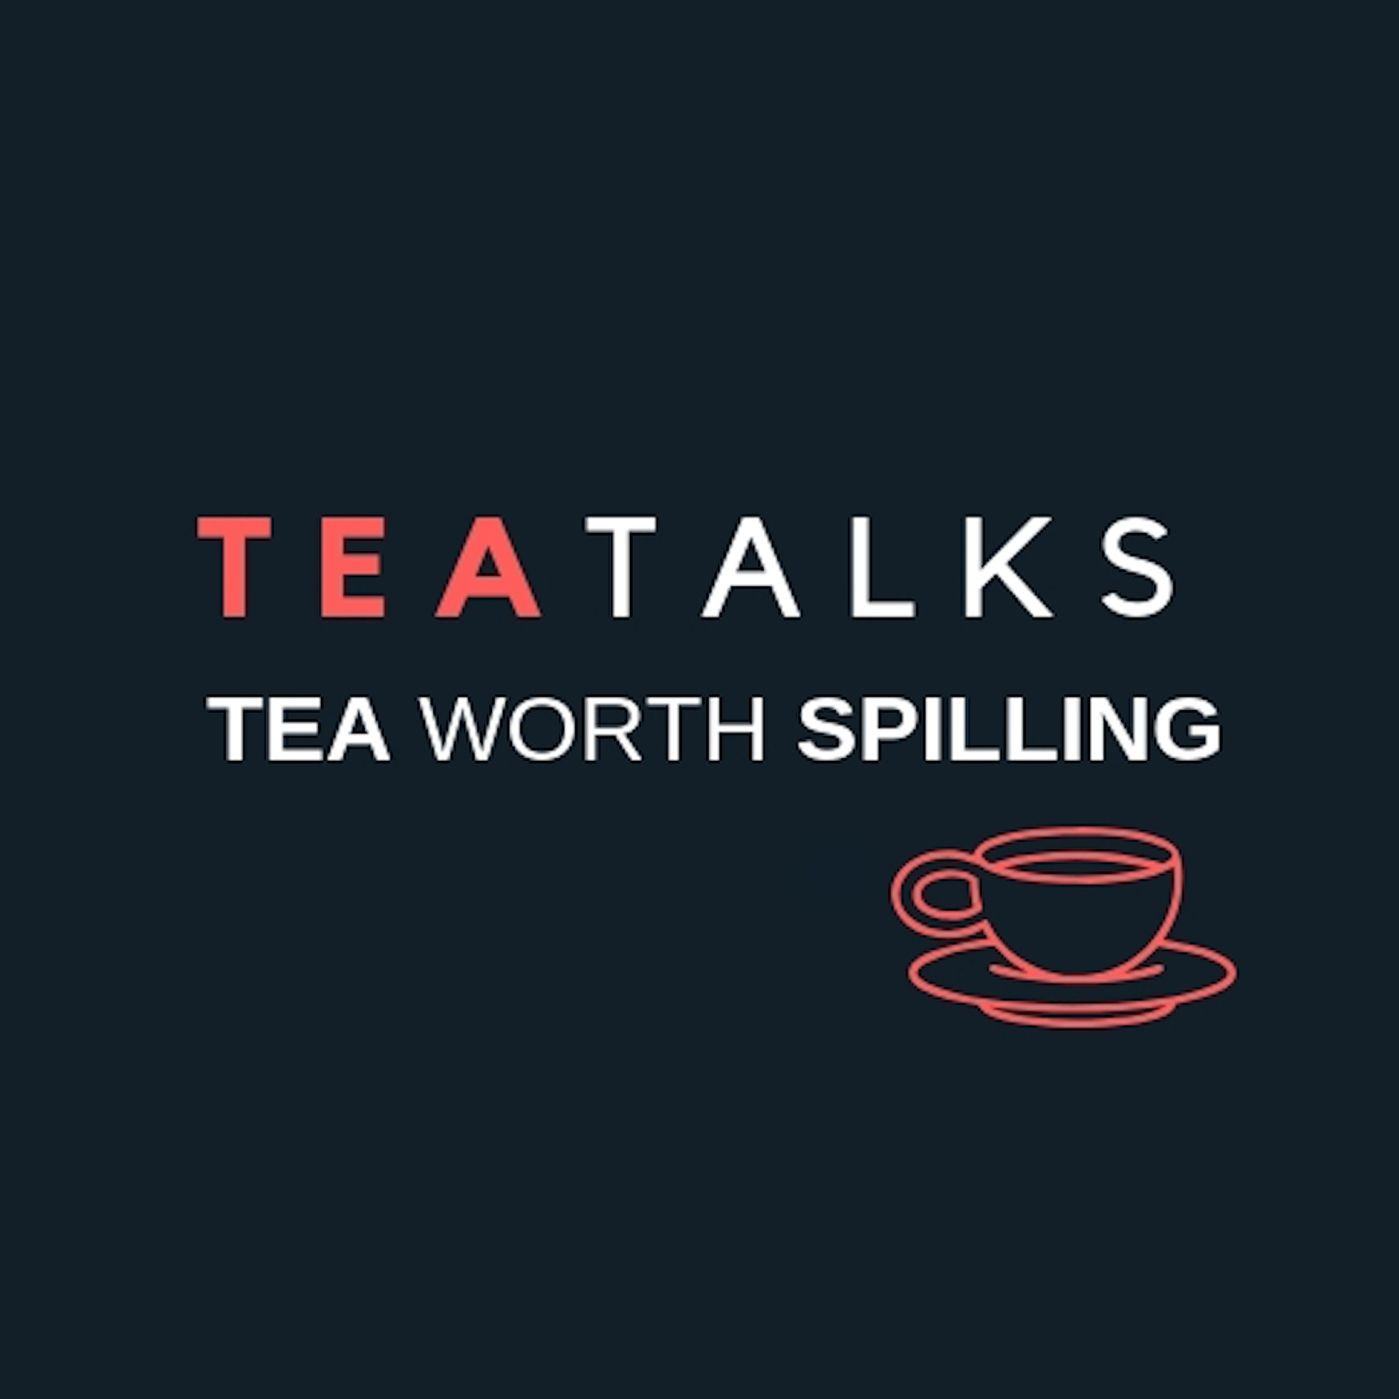 TeaTalks: Mental Health Discussion